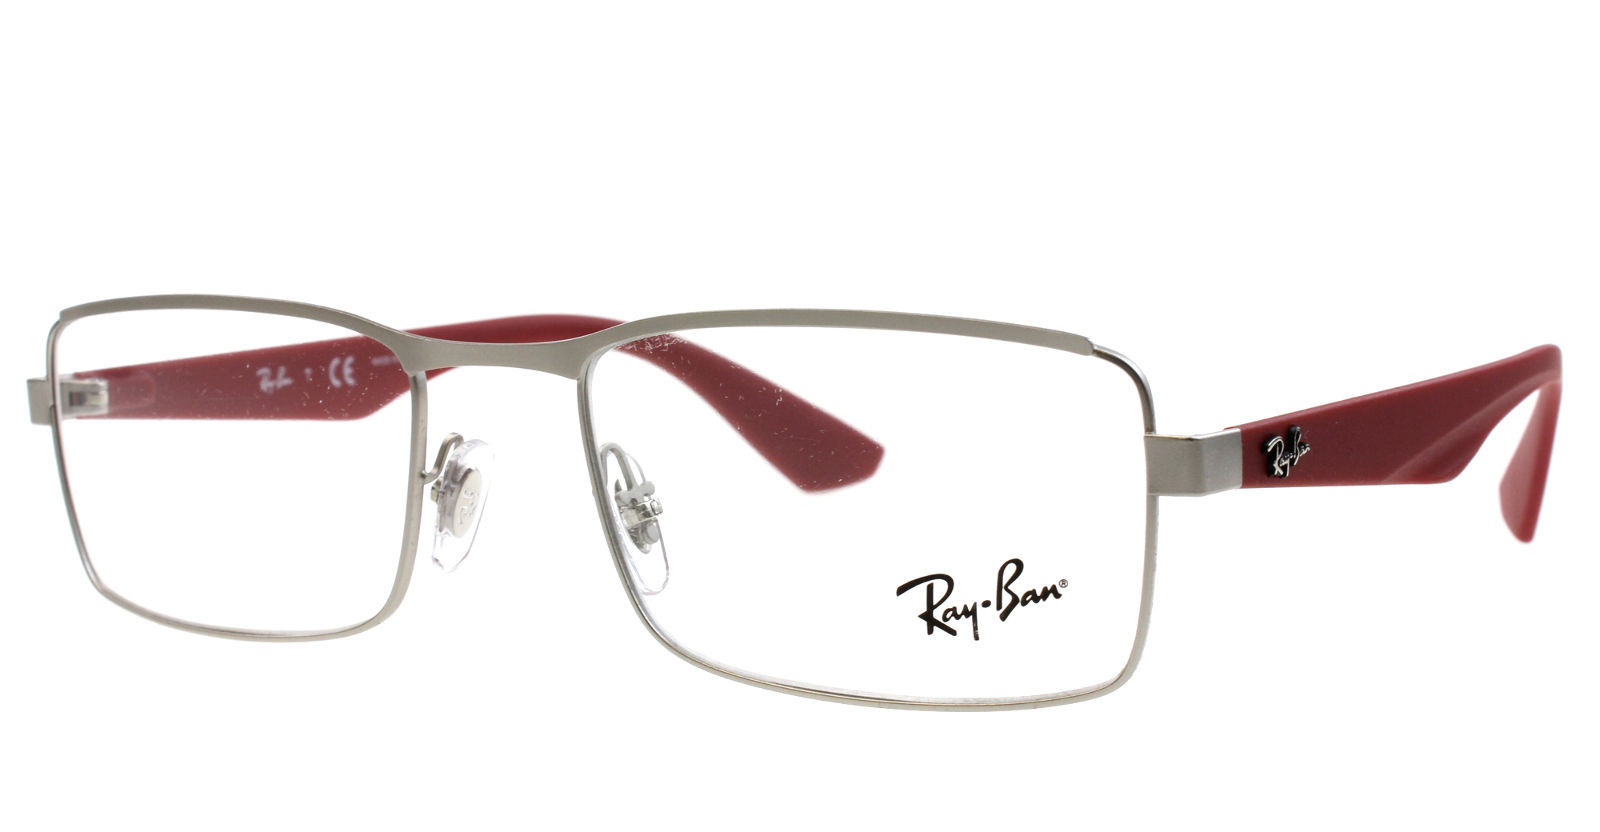 1a491879d93 57. 57. NEW RAY-BAN RB 6332 2538 GUNMETAL EYEGLASSES AUTHENTIC FRAMES RX  RB6332 53-18. Free Shipping